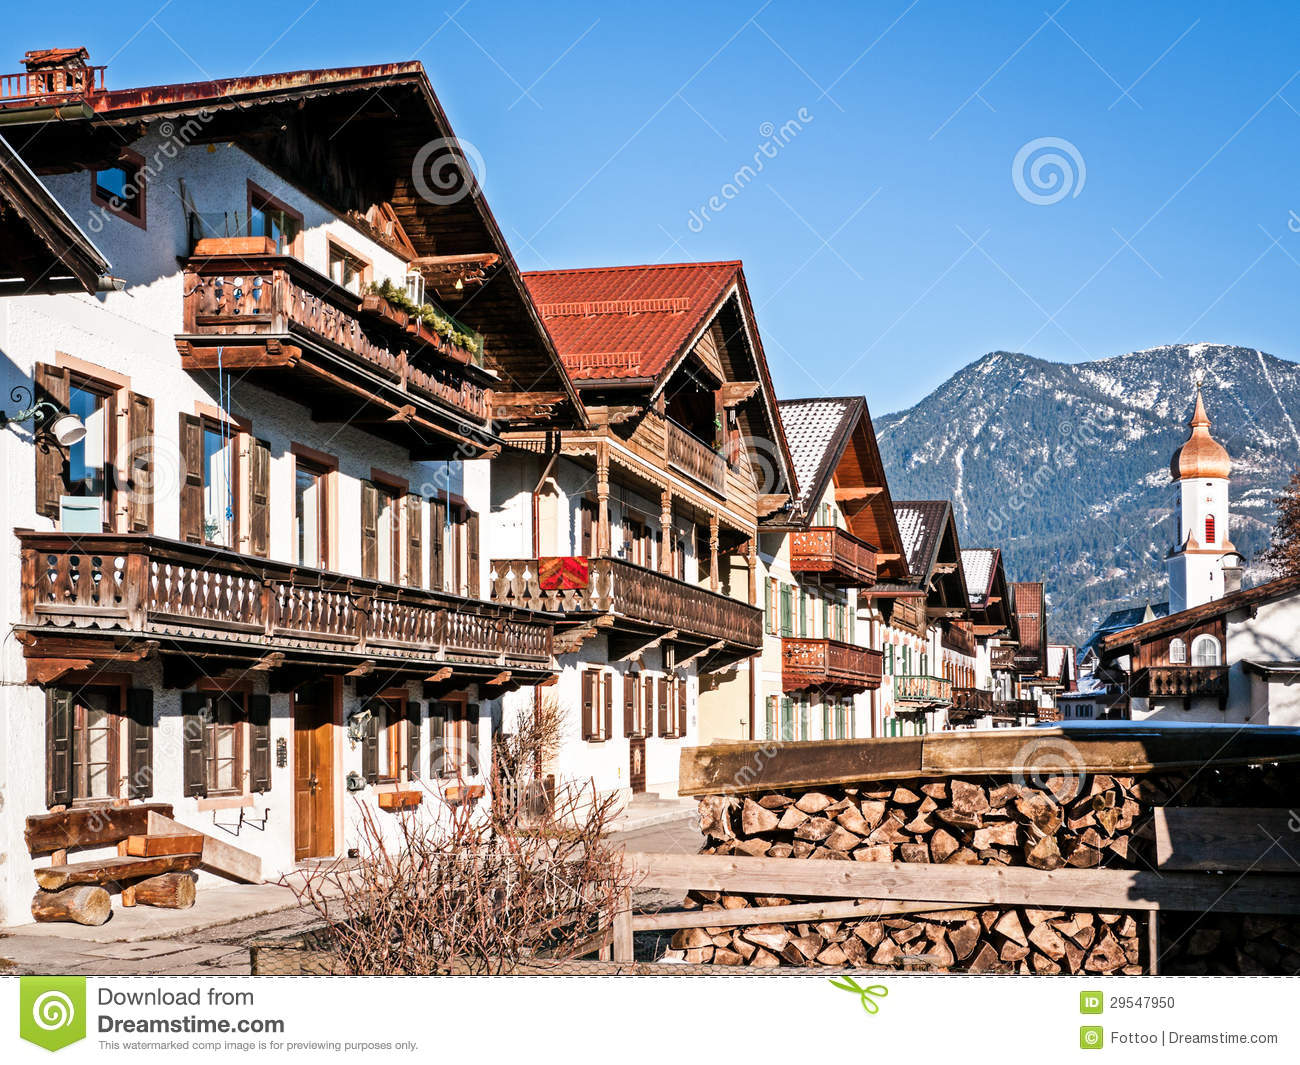 Garmisch partenkirchen photo stock image du d suet - Garmisch partenkirchen office du tourisme ...